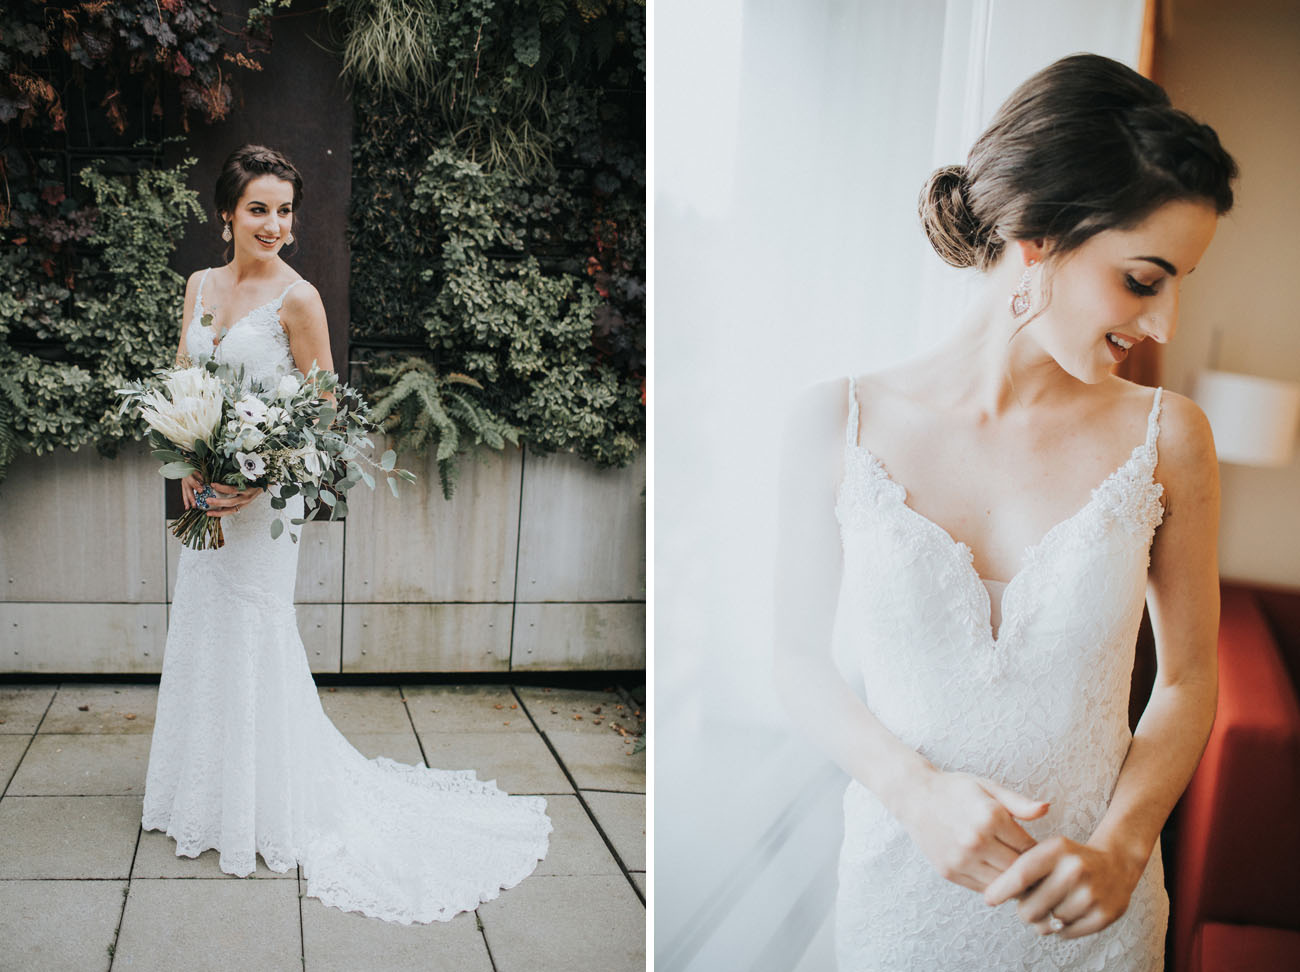 Paigely Maggie Sottero Dress